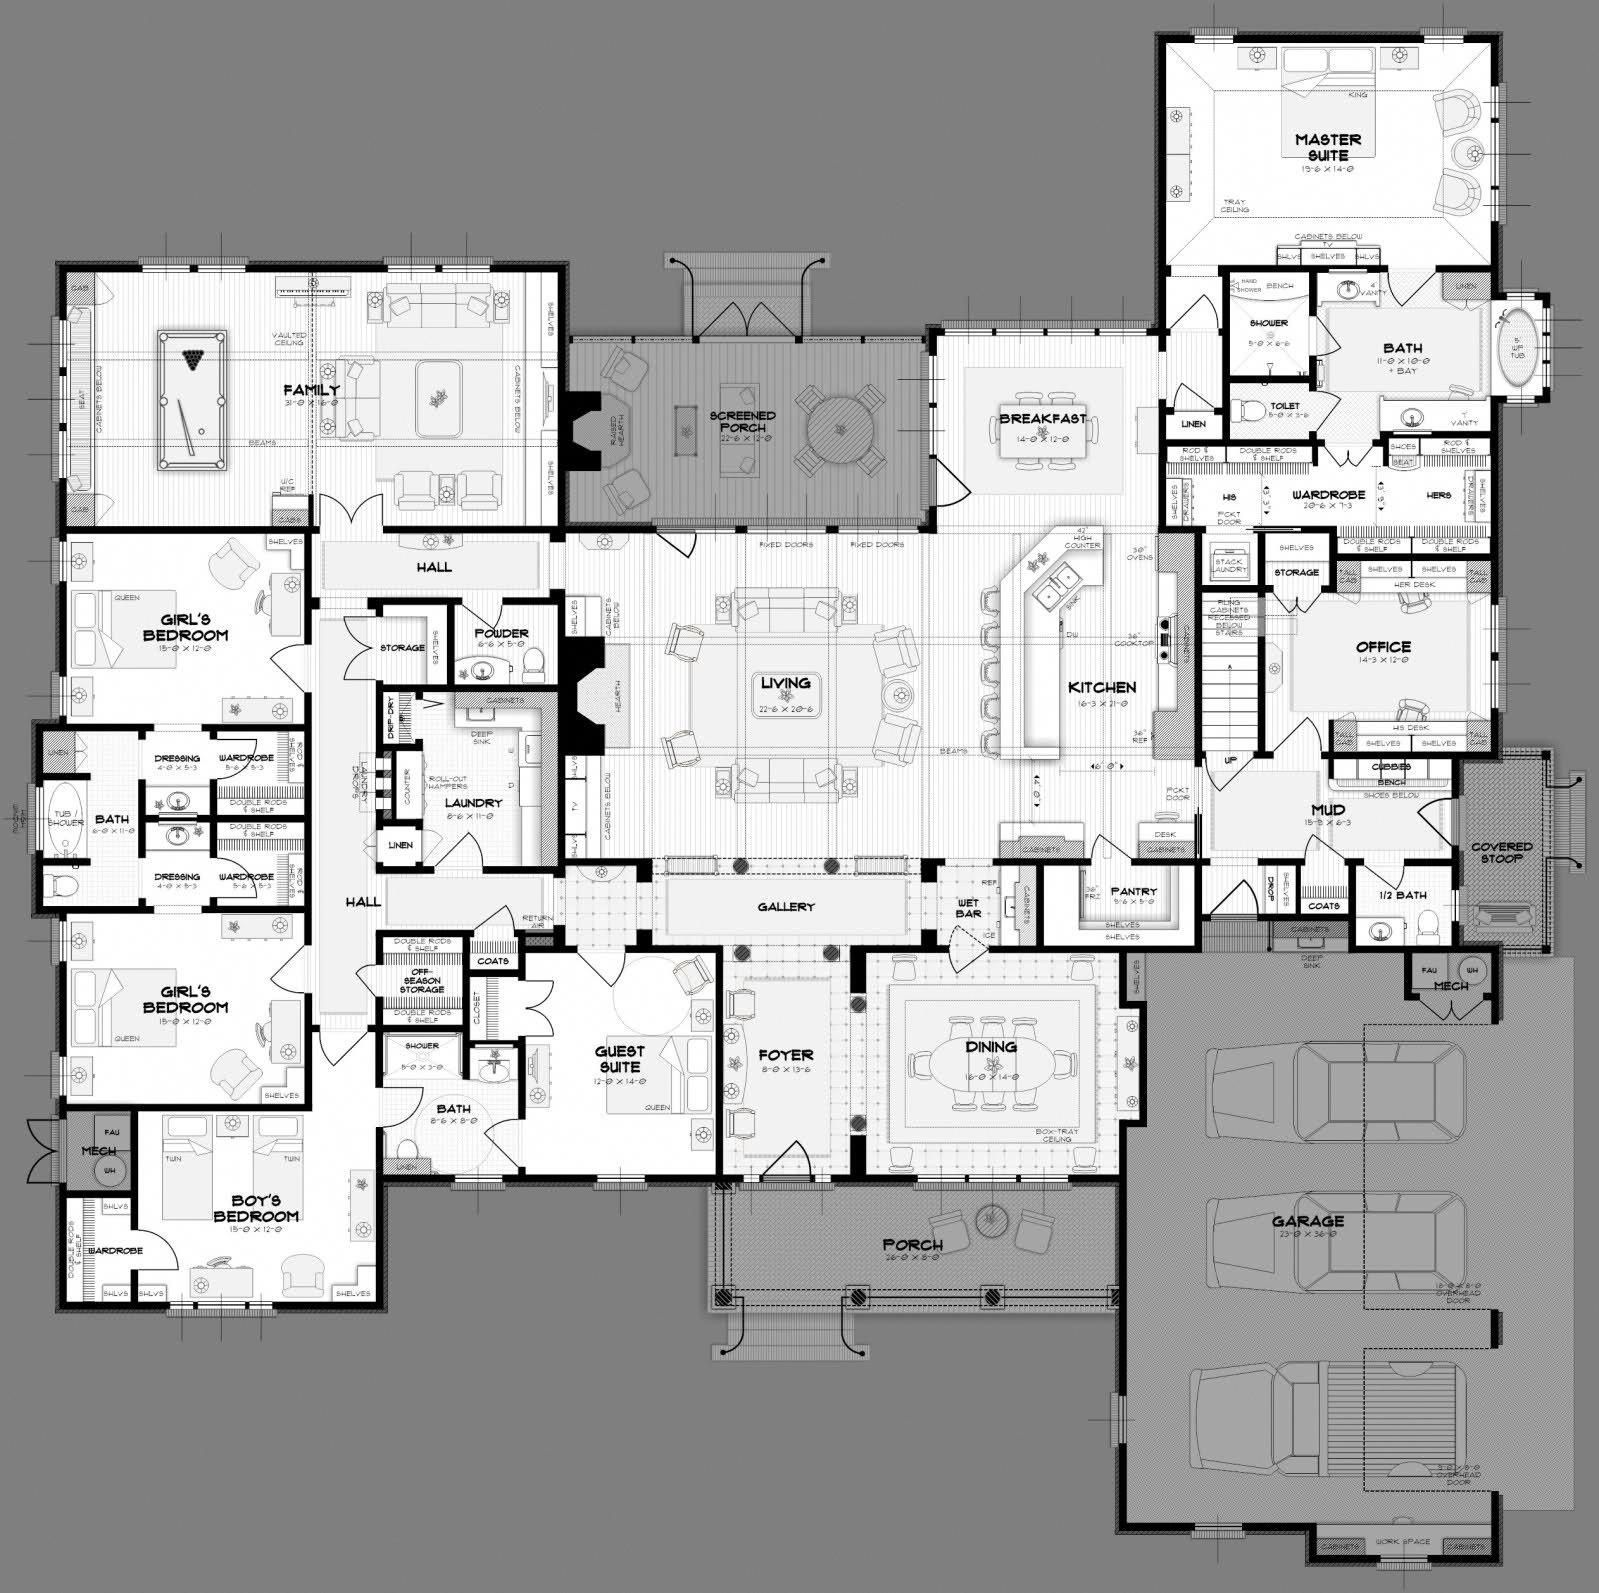 Graceful entertained bedroom feng shui floor plans Ask The ...